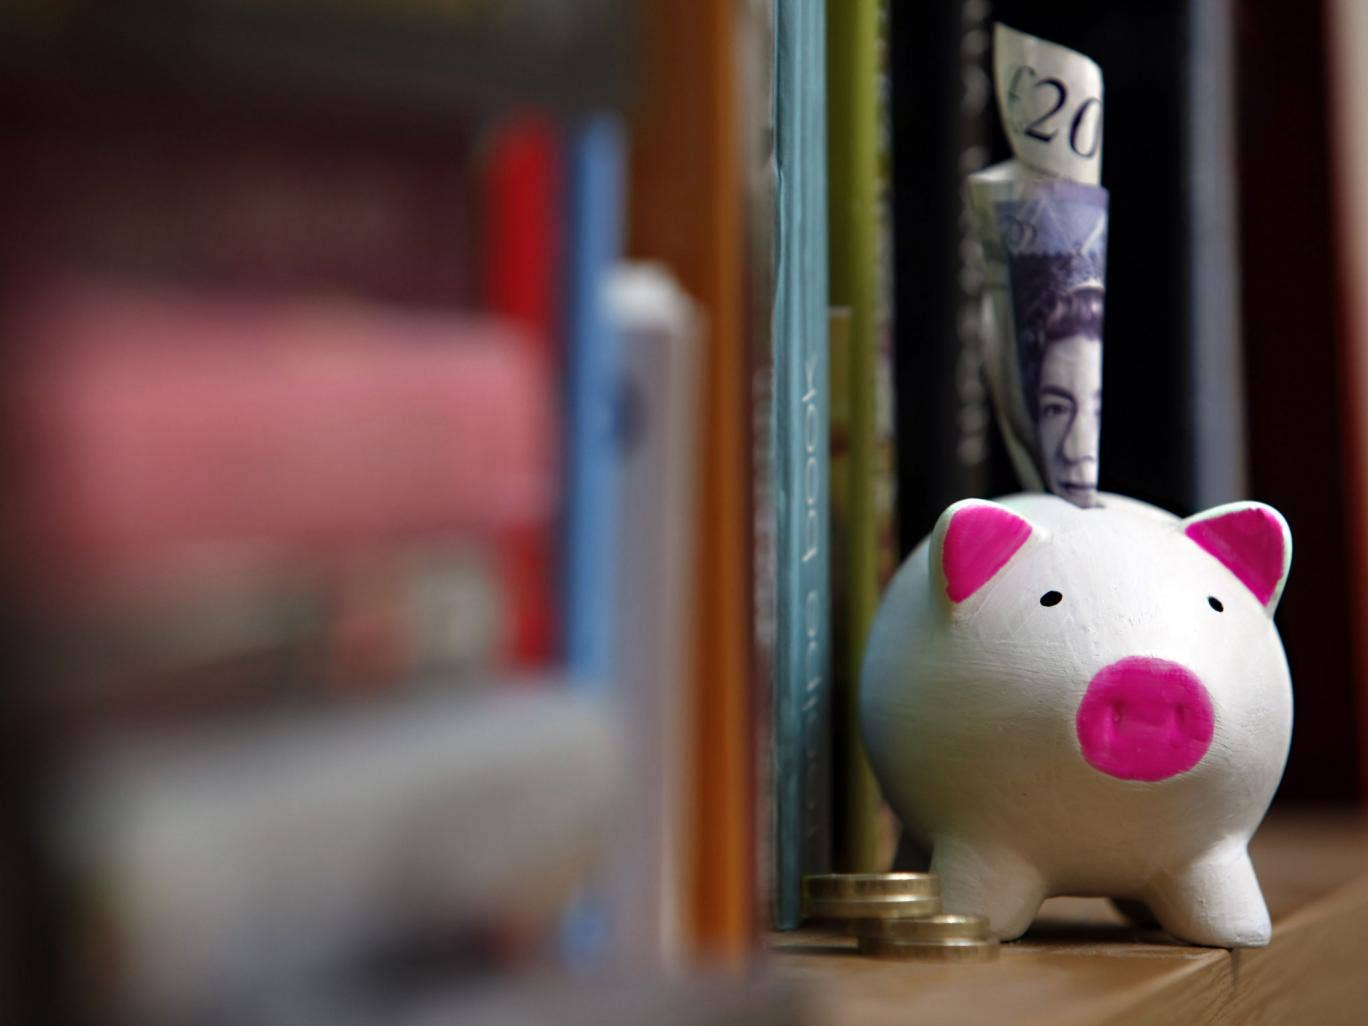 Raiding the piggy bank: But savers can improve returns by shopping around